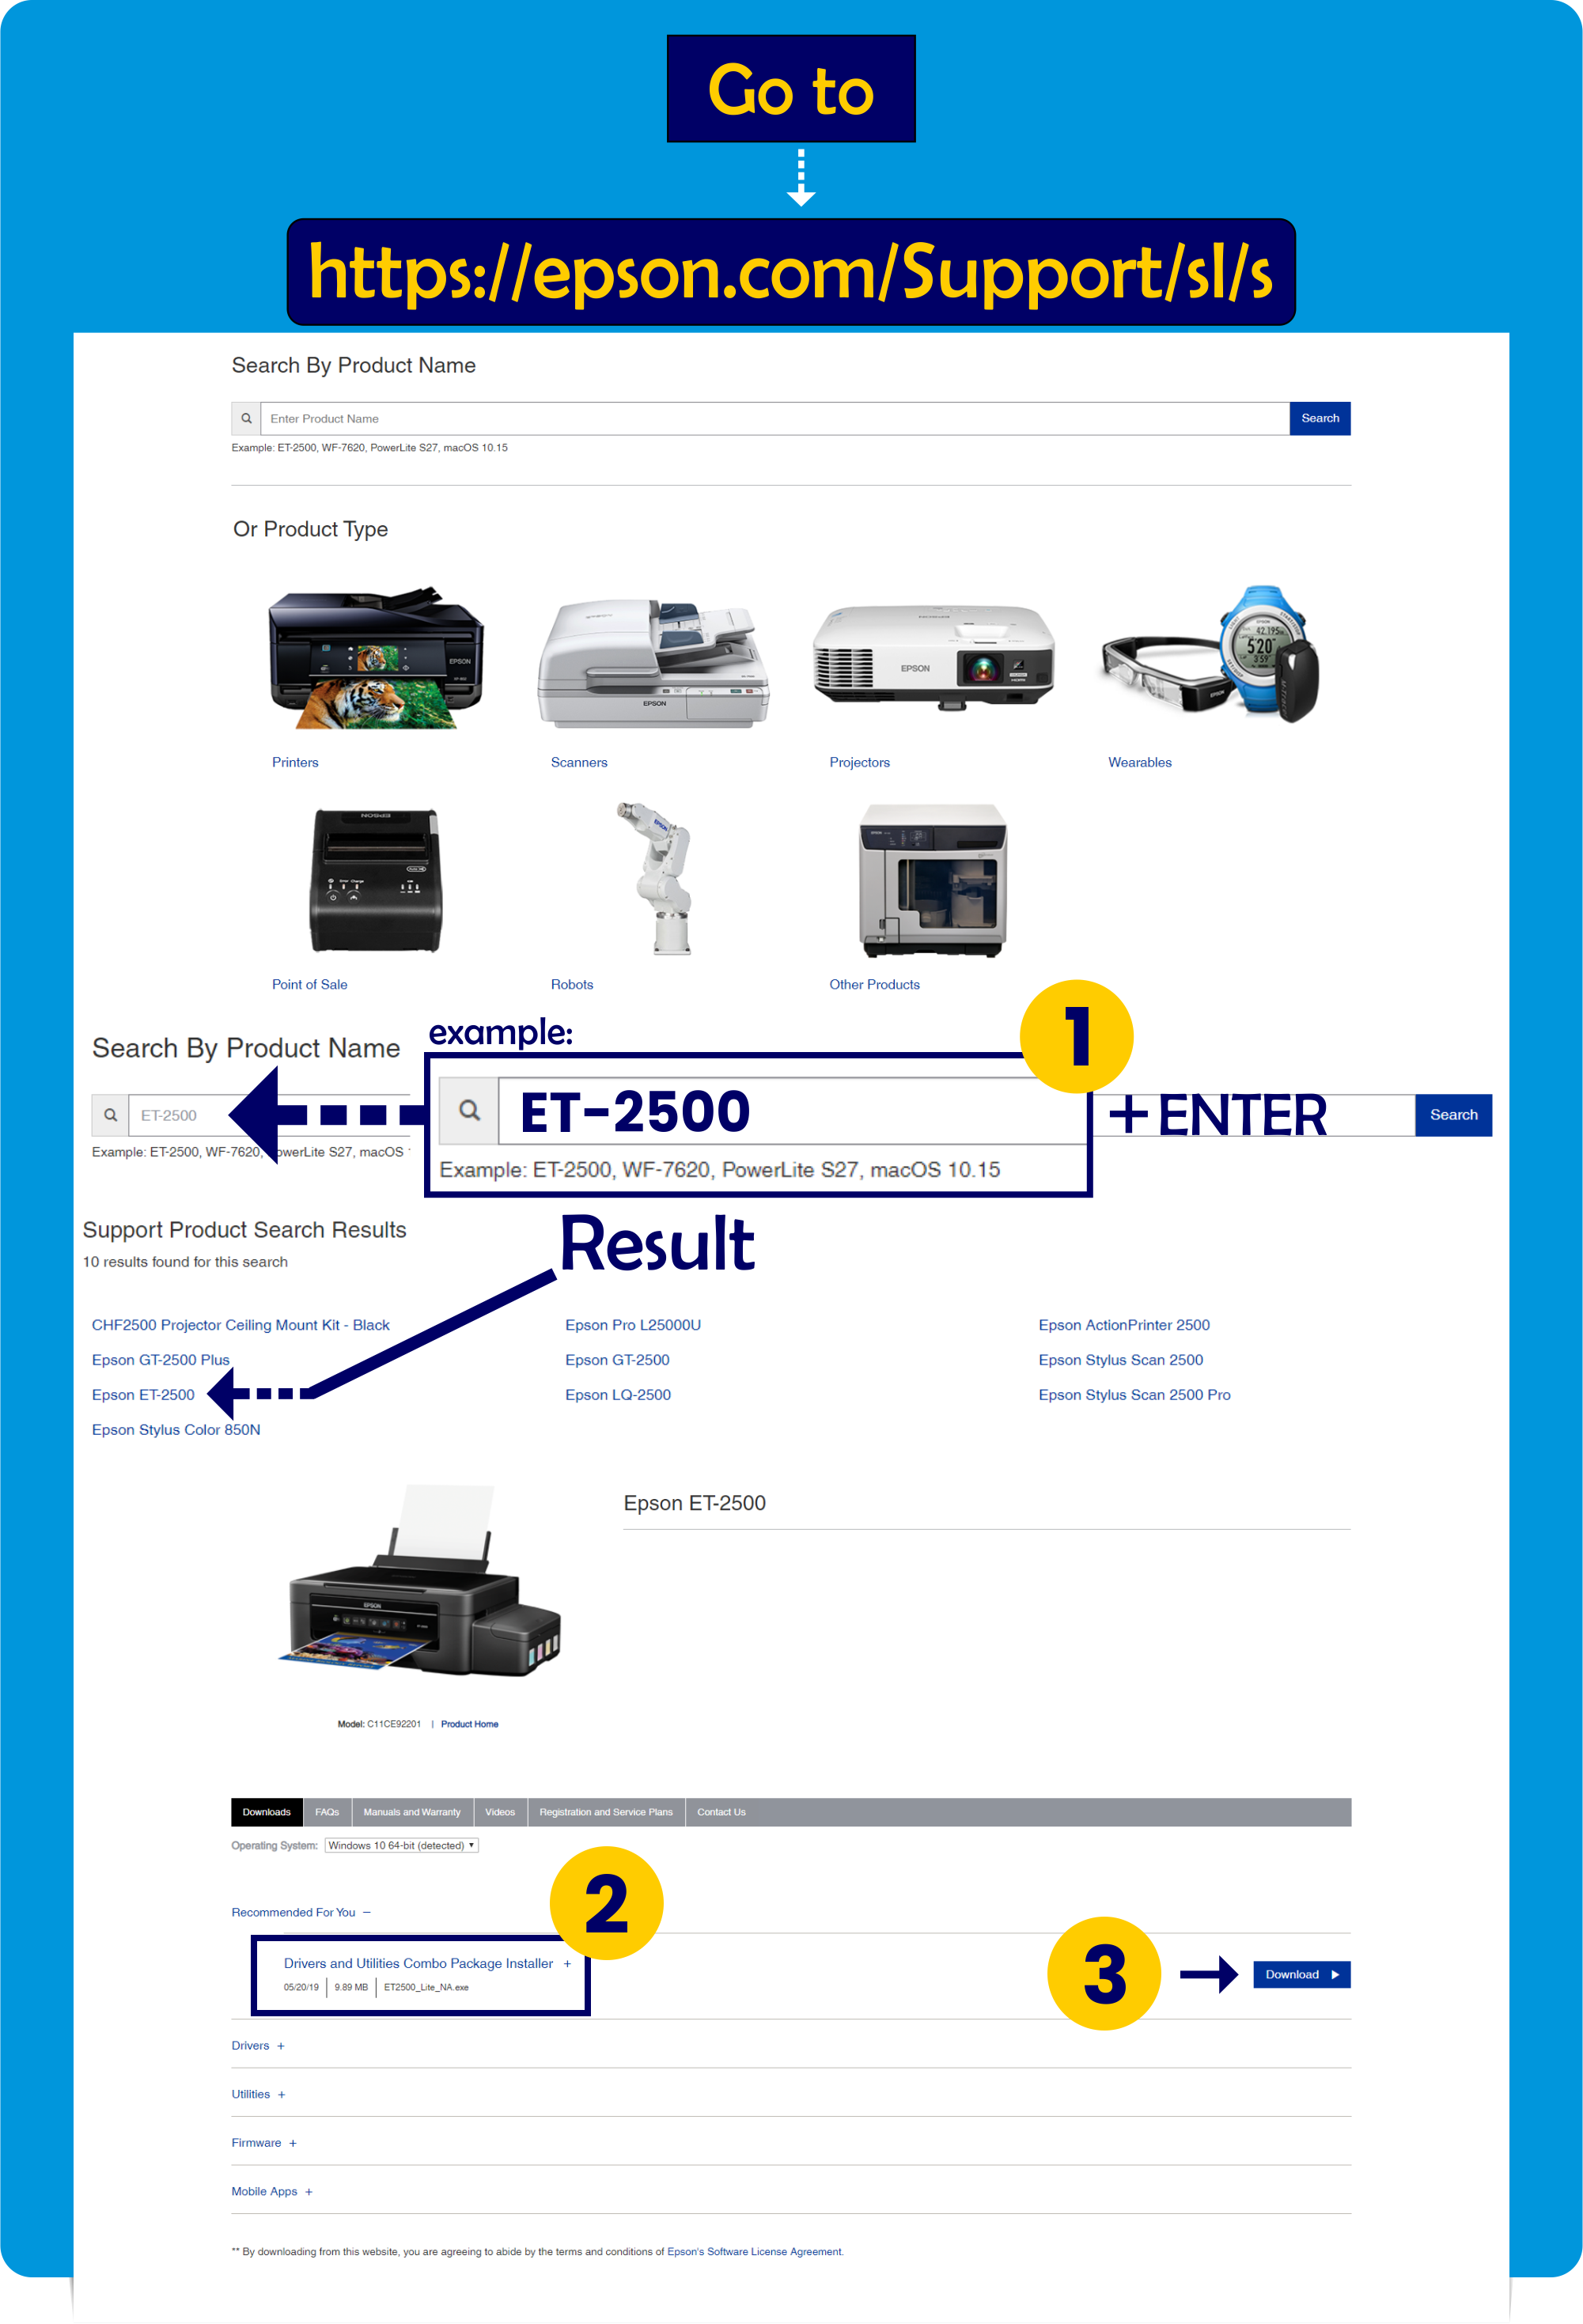 How to Download Epson Drivers and Software